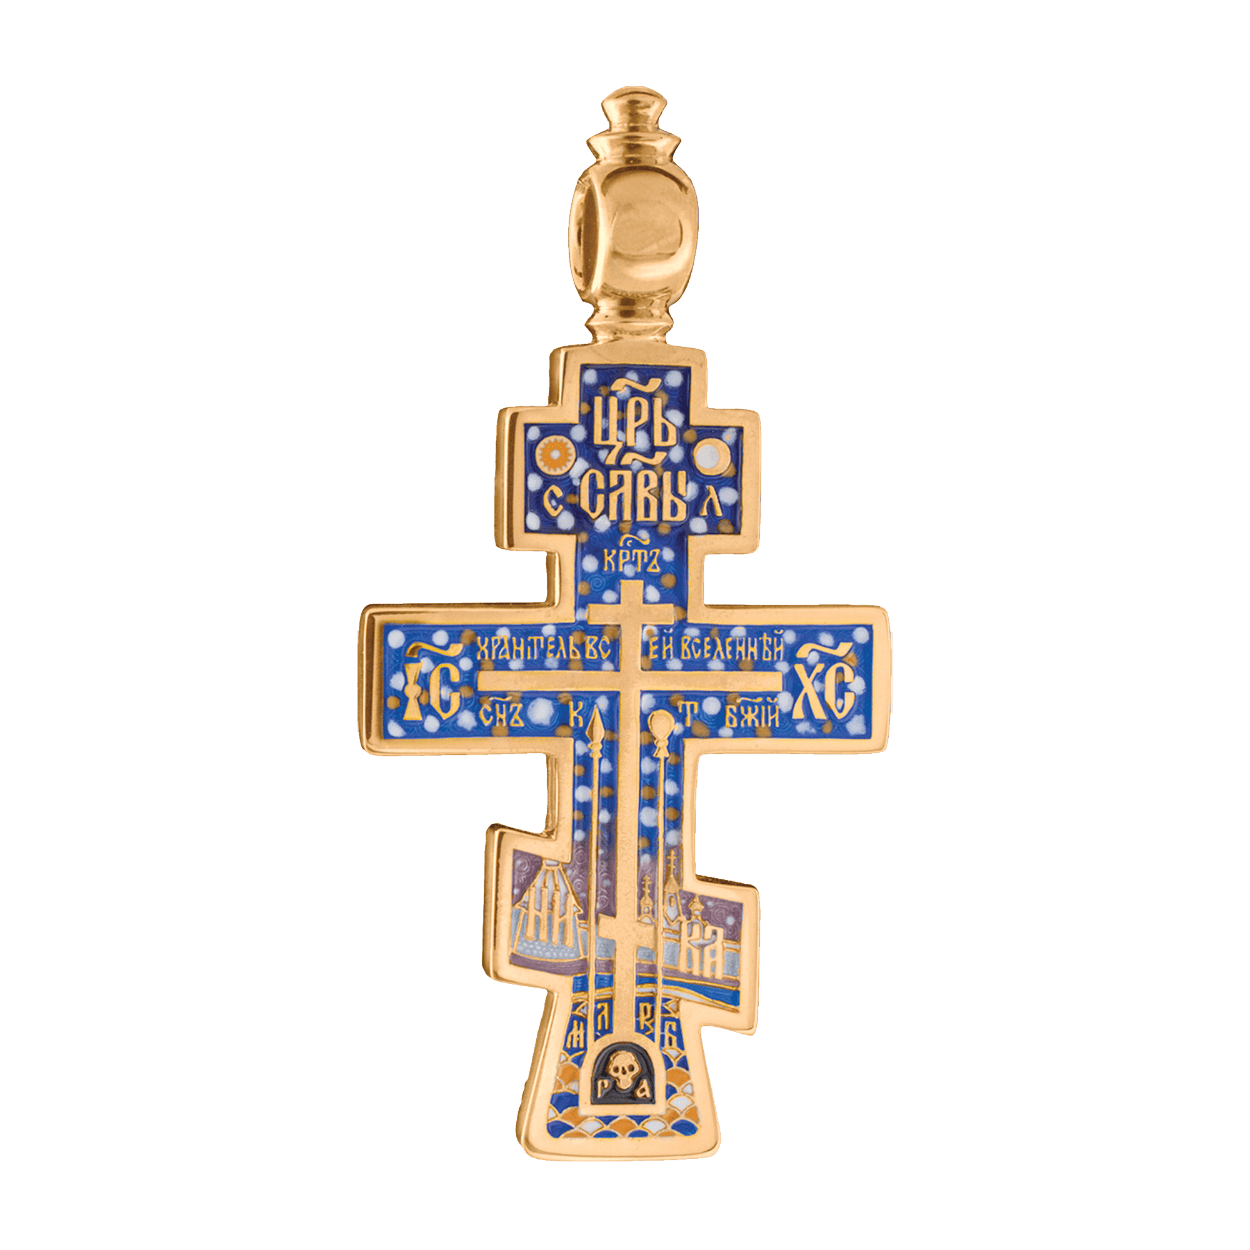 russian-orthodox-silver-enamaled-cross-pendant-old-believers-cross-master-jeweler-fedorov